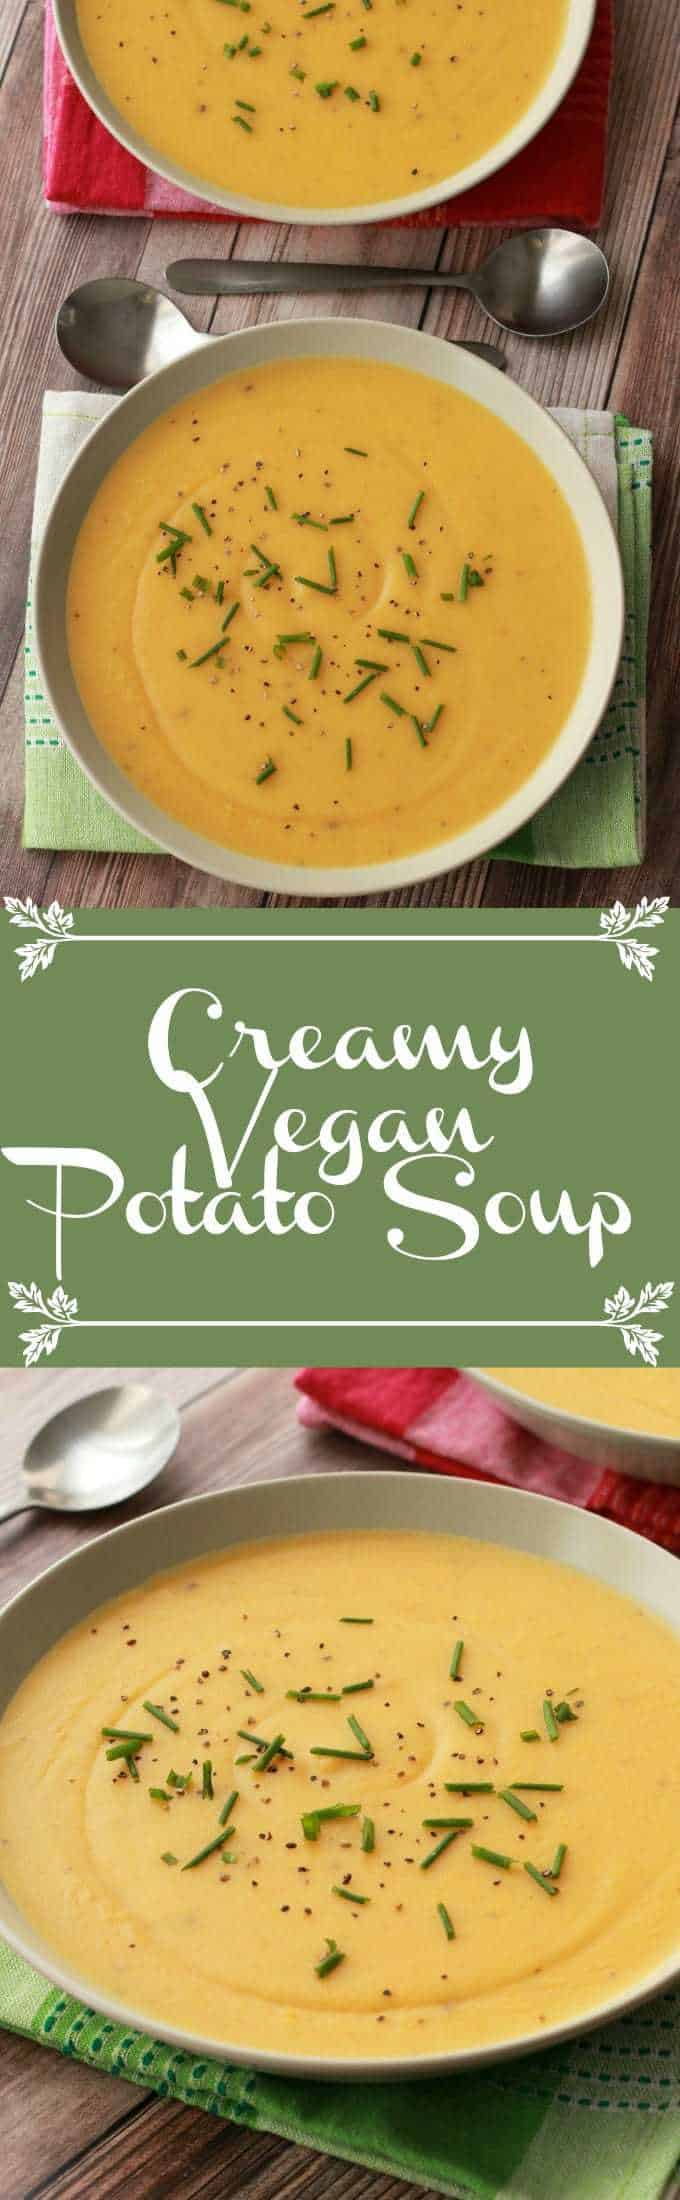 Rich, hearty and satisfying vegan potato soup. Super easy, hugely delicious and so filling you can have it as a main course! Vegan and Gluten-Free. | lovingitvegan.com